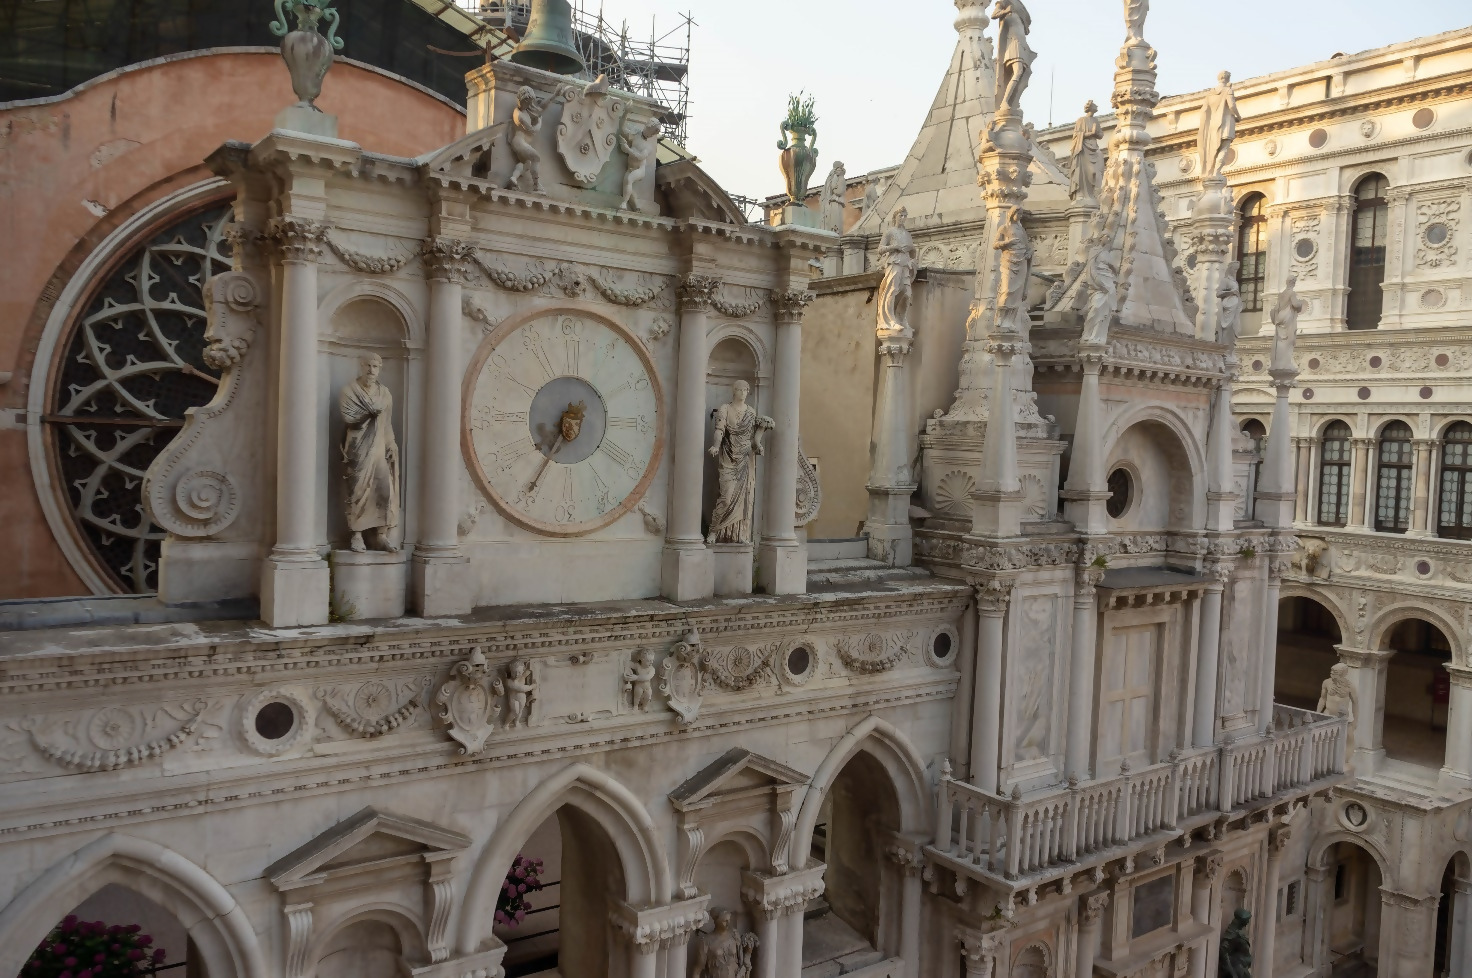 The Doge's Palace Clock